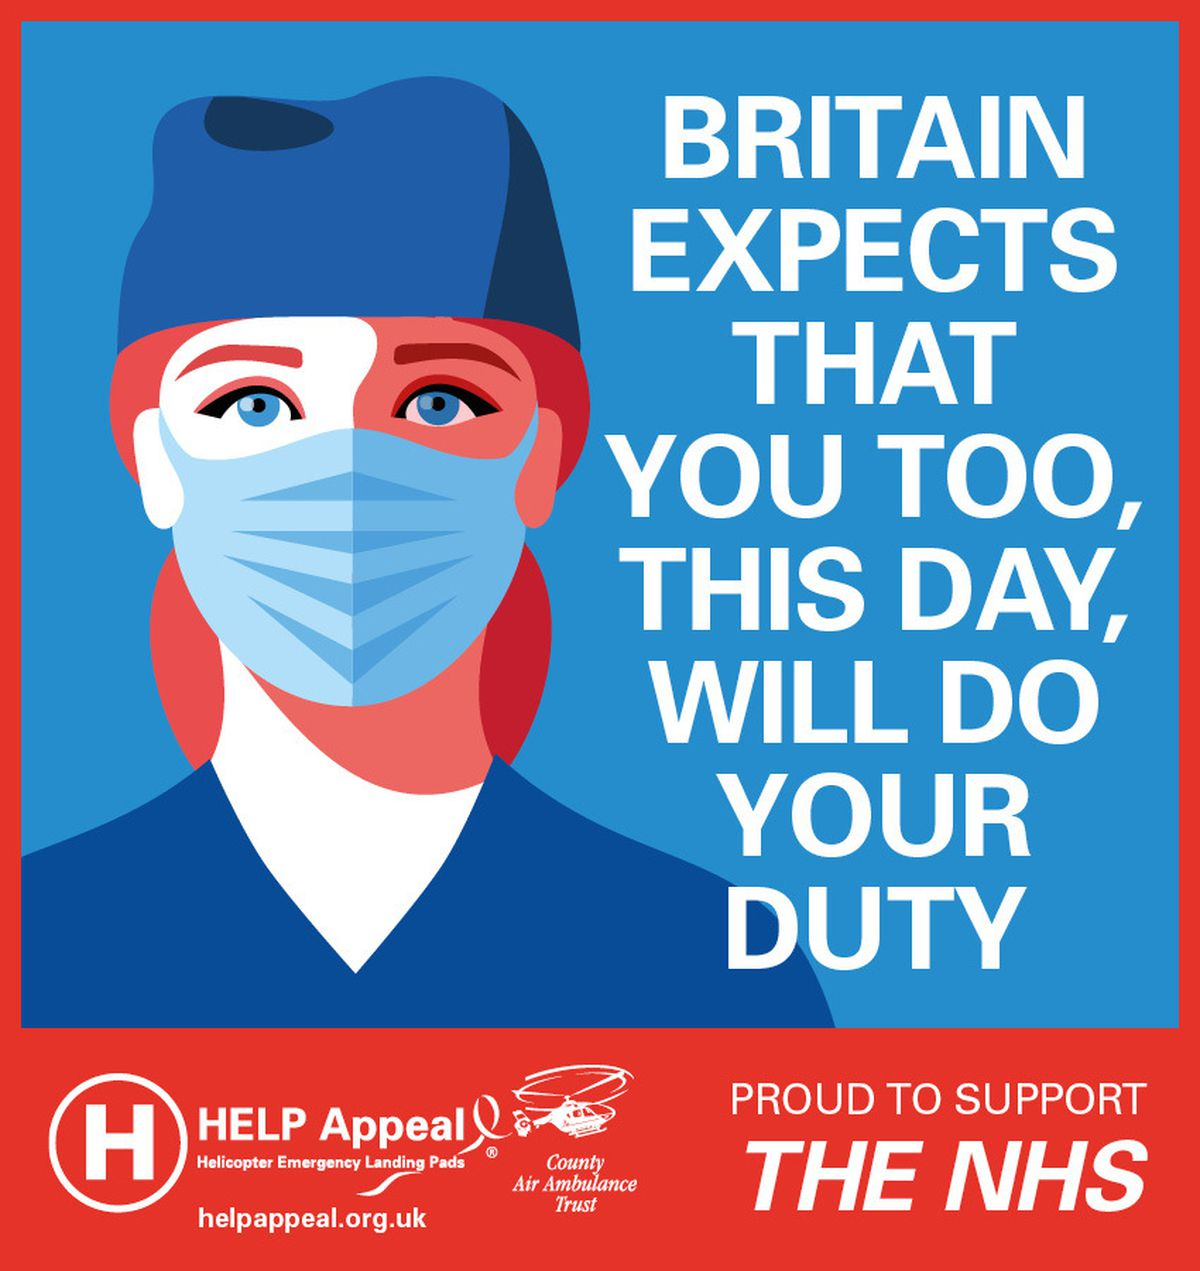 One of the posters by the HELP Appeal